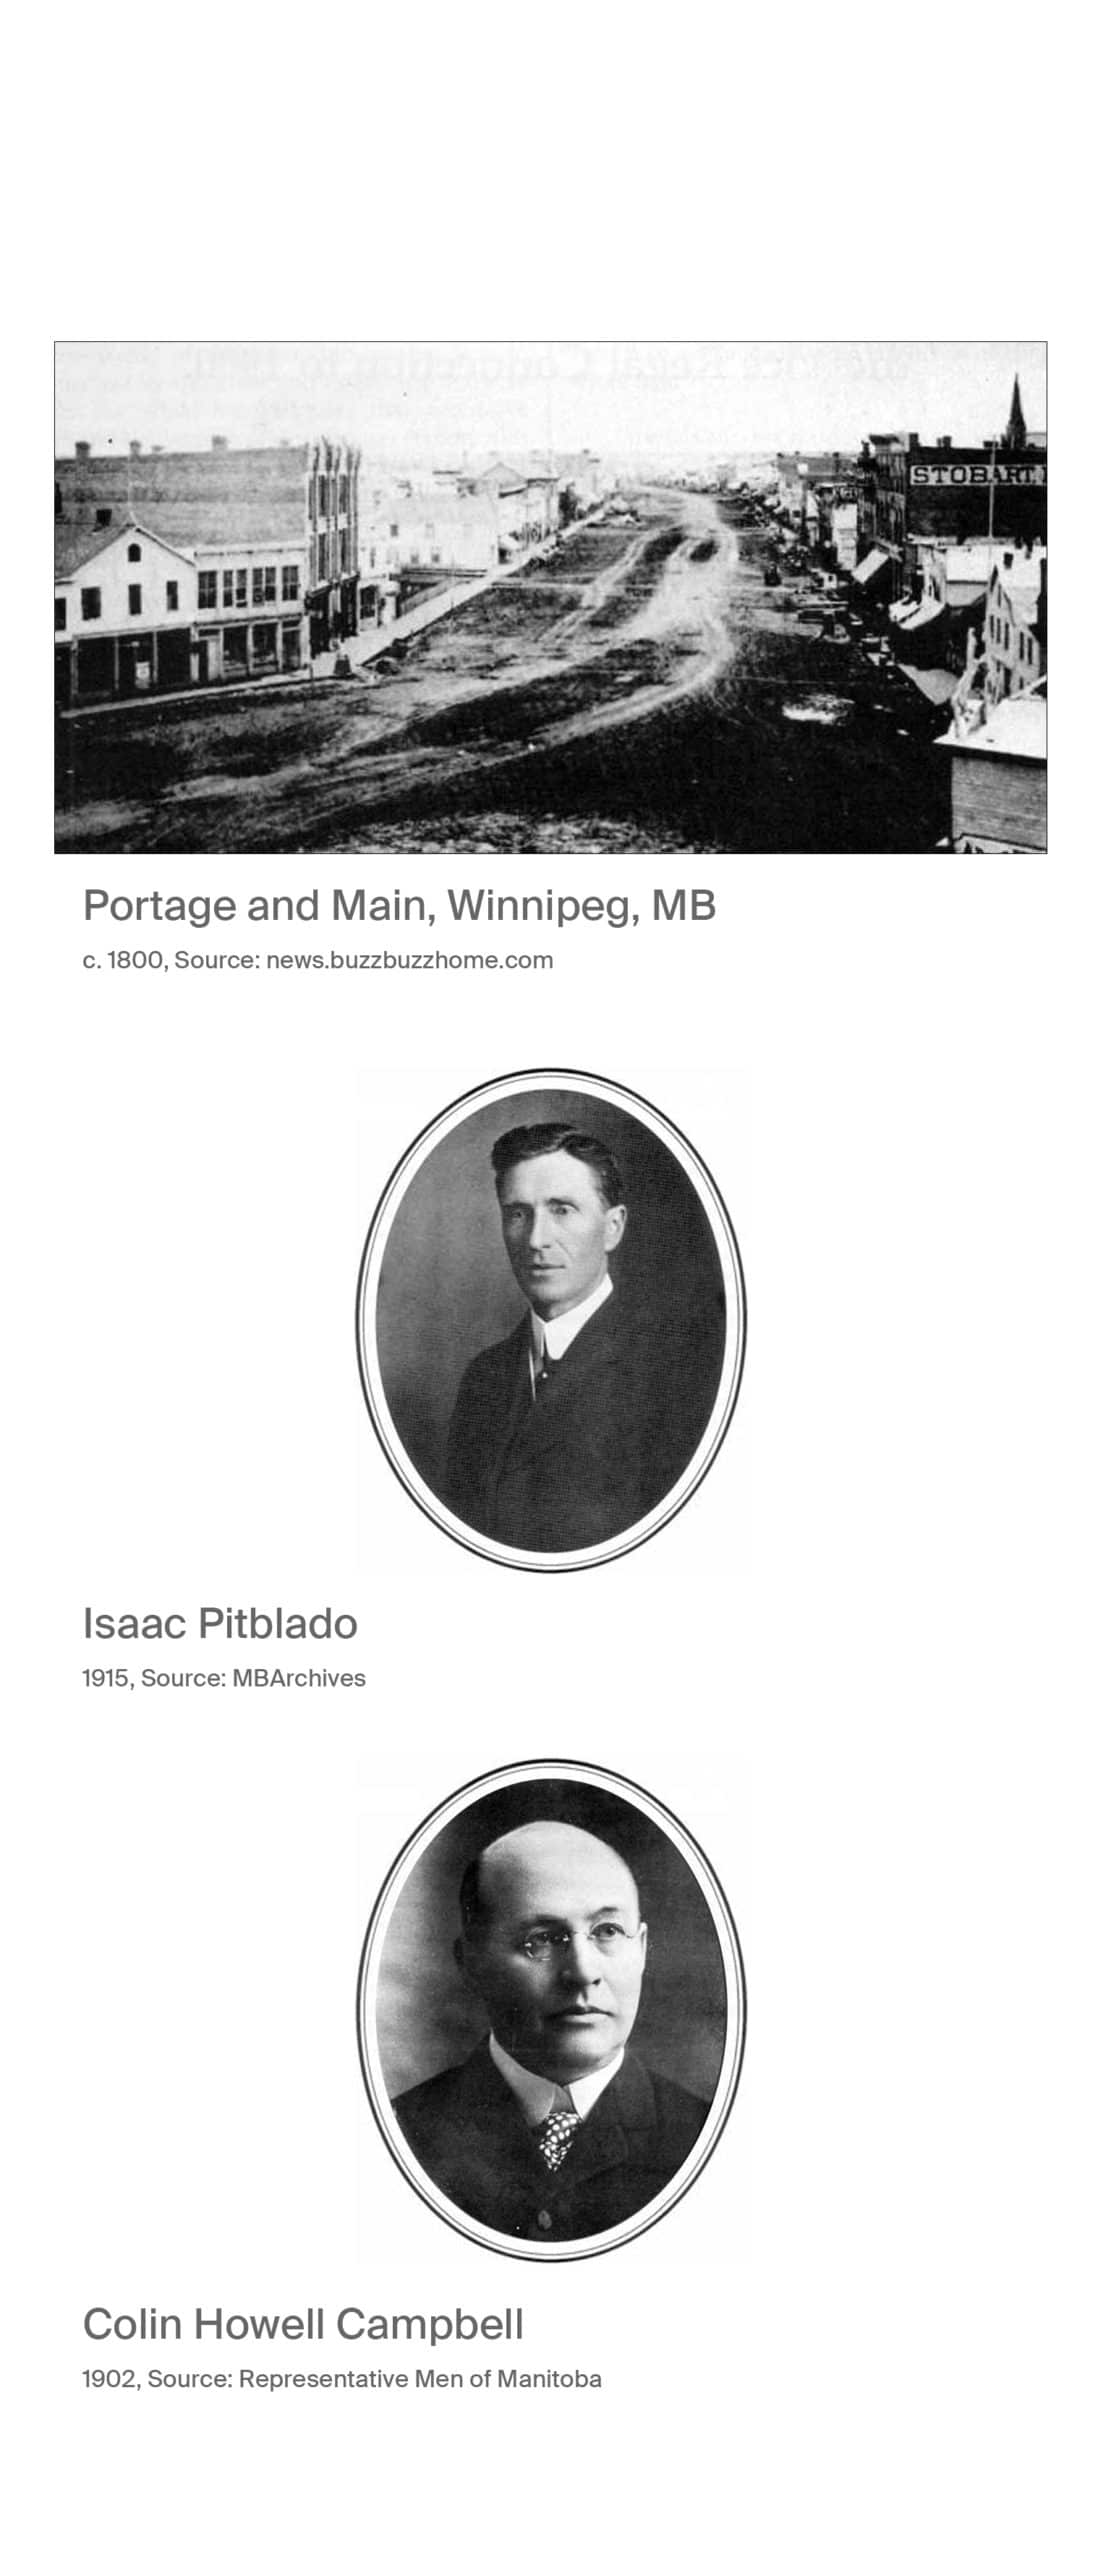 Portage and Main, Winnipeg, MB, circa 1800, source news.buzzbuzzhome.com. Isaac Pitblado 1915, source MB Archives. Colin Howell capbell 1902, Source Representative Men of Manitoba.